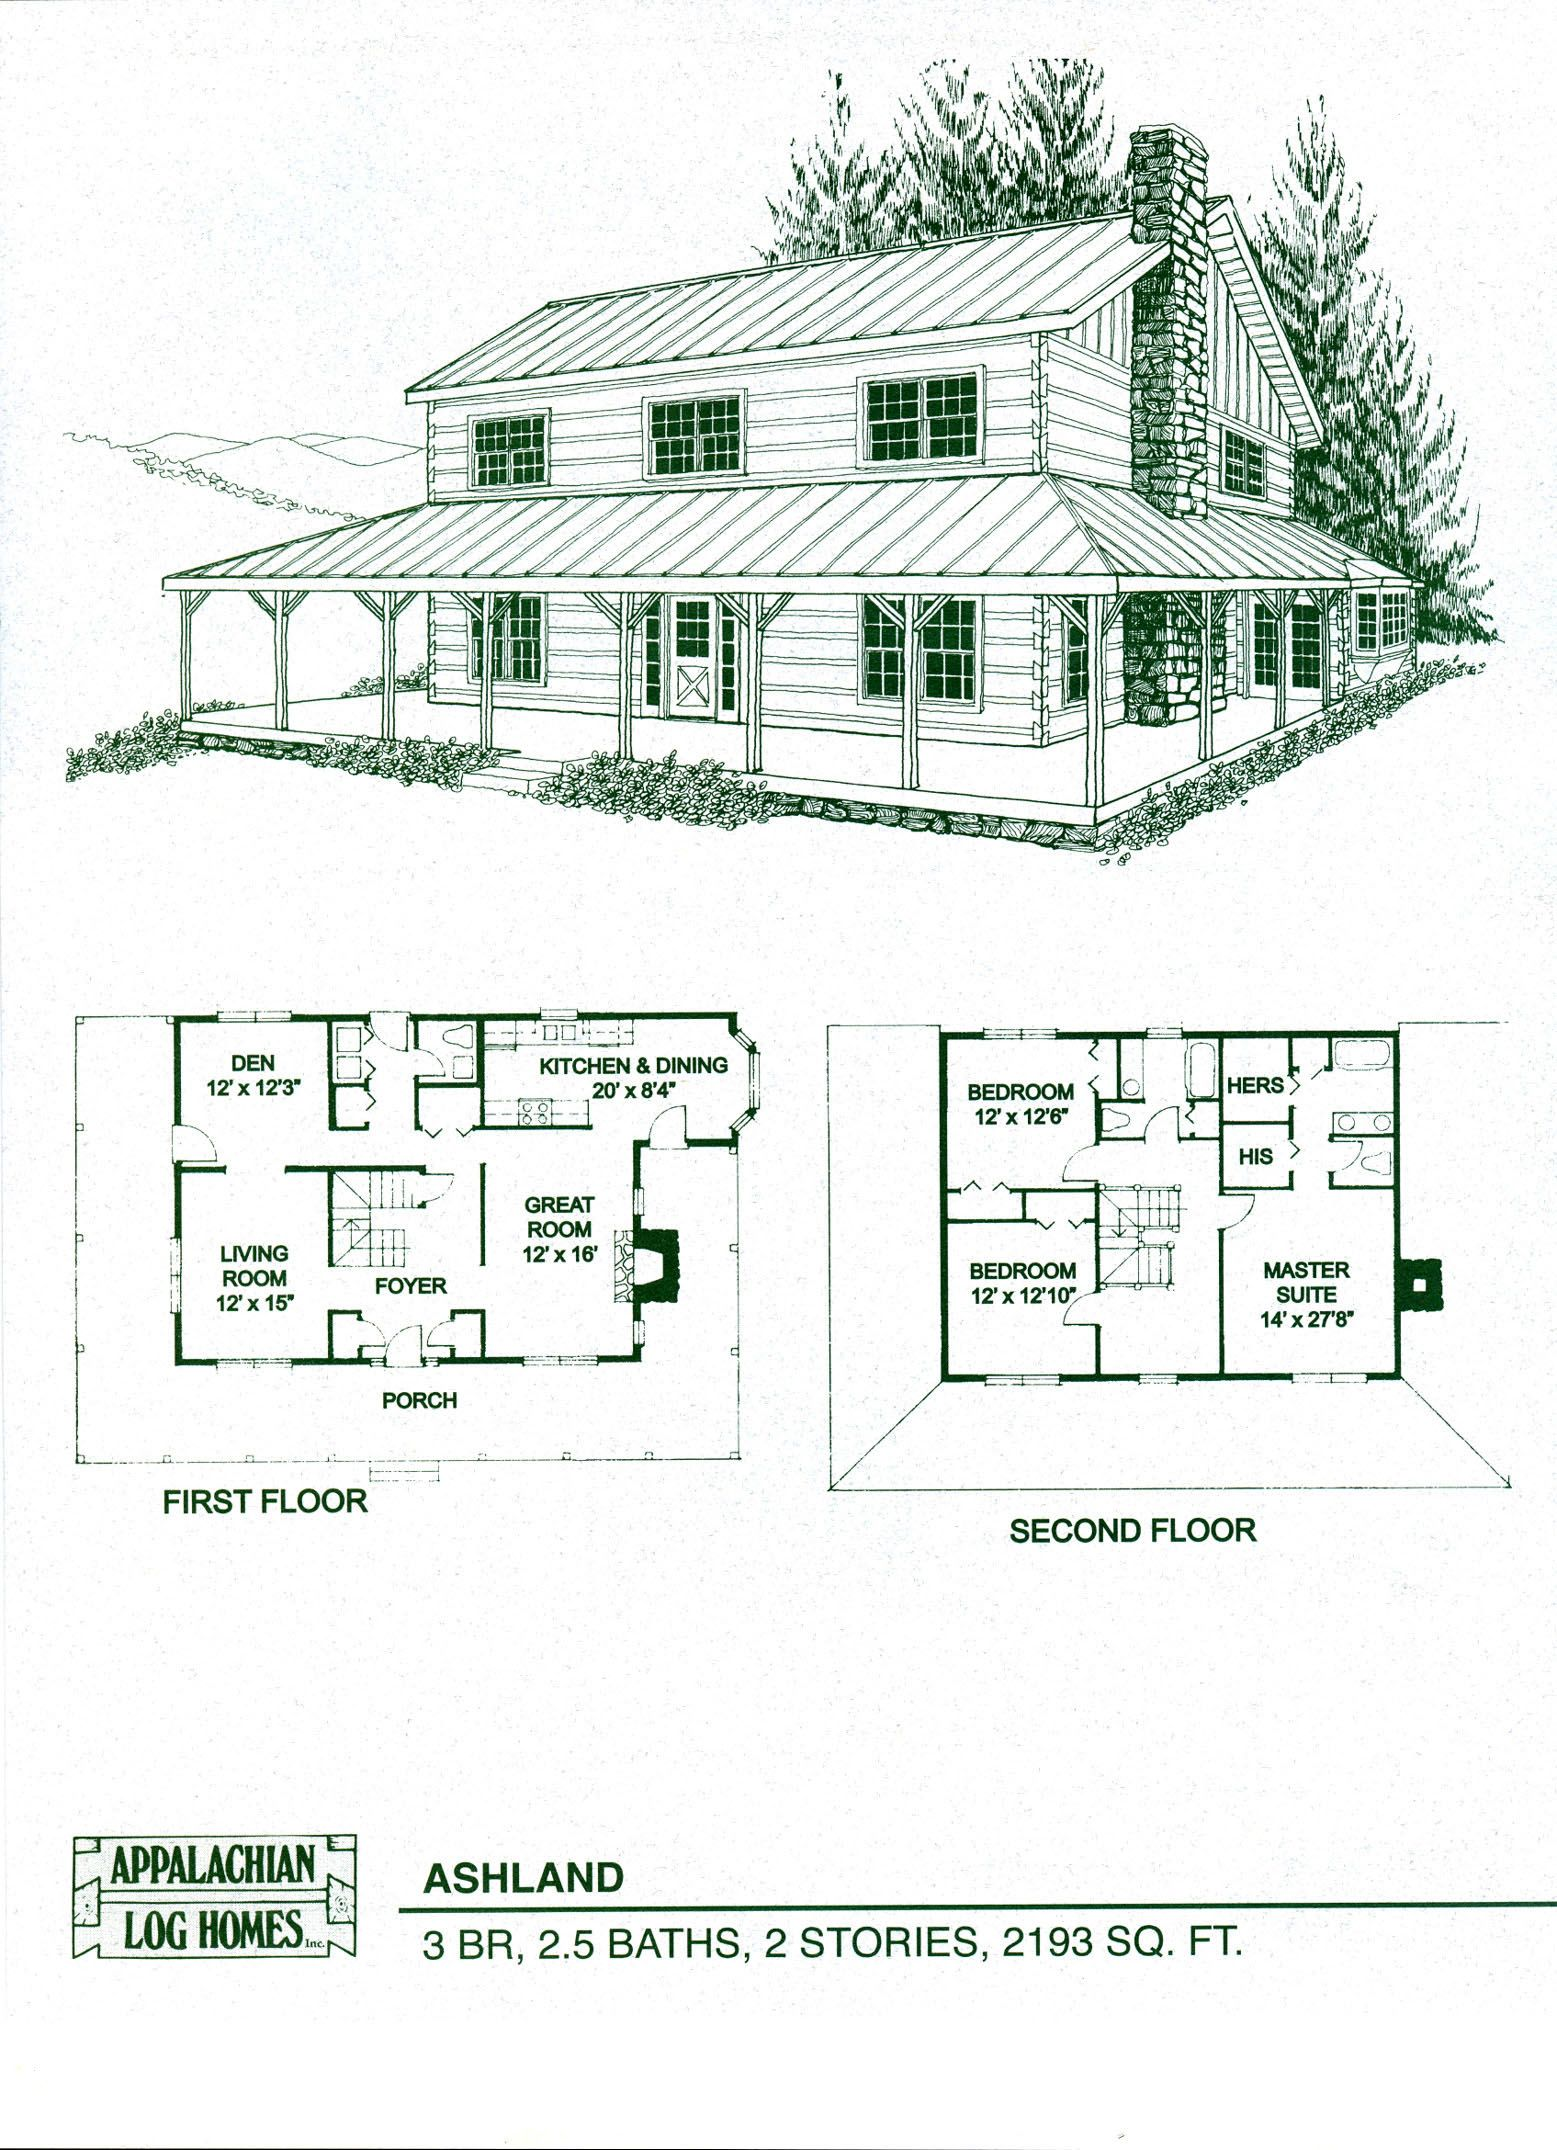 Log Home Floor Plans - Log Cabin Kits - Appalachian Log Homes | Home ...